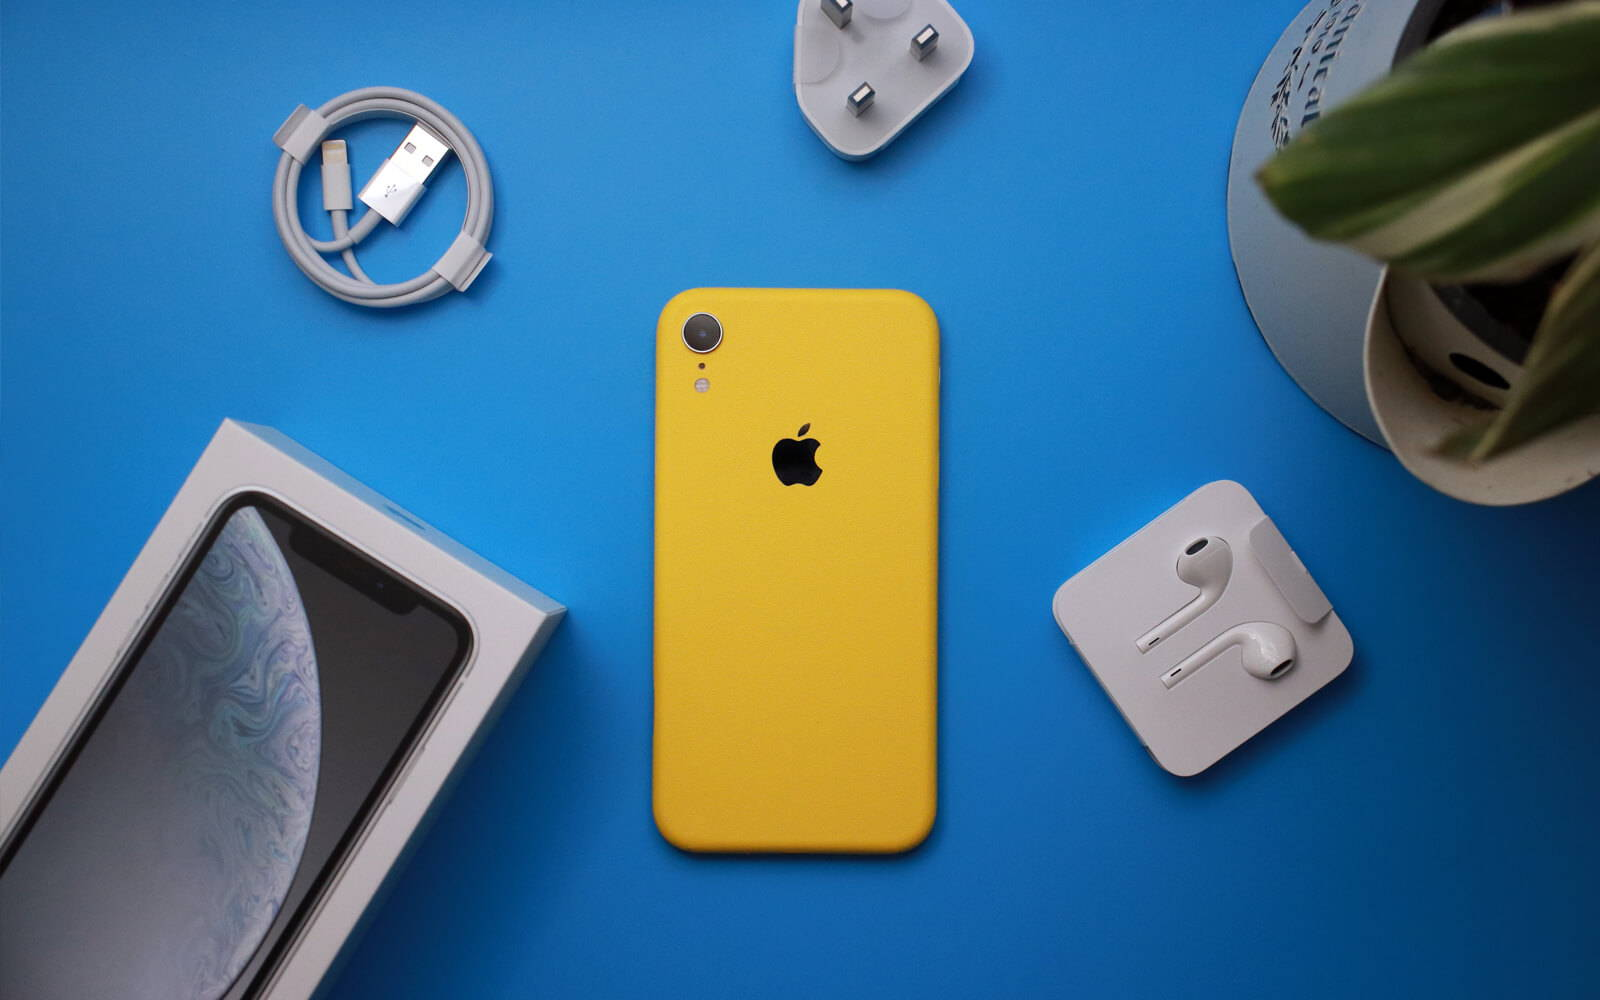 iPhone XR True Colour Yellow Skins